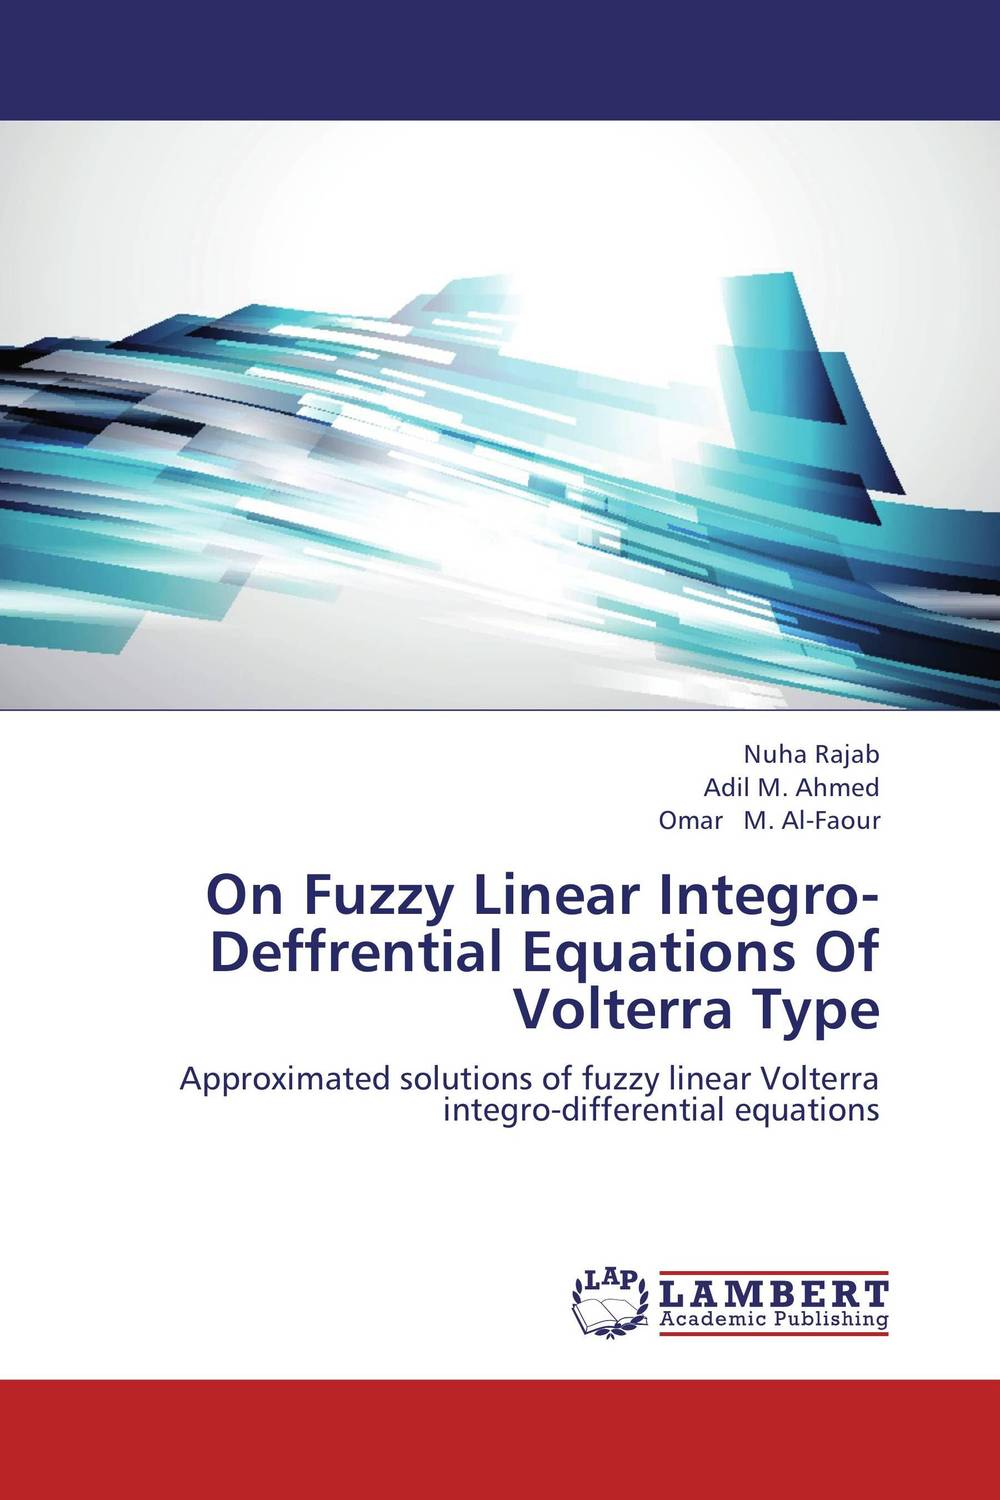 On Fuzzy Linear Integro-Deffrential Equations Of Volterra Type n j patil r h chile and l m waghmare design of adaptive fuzzy controllers